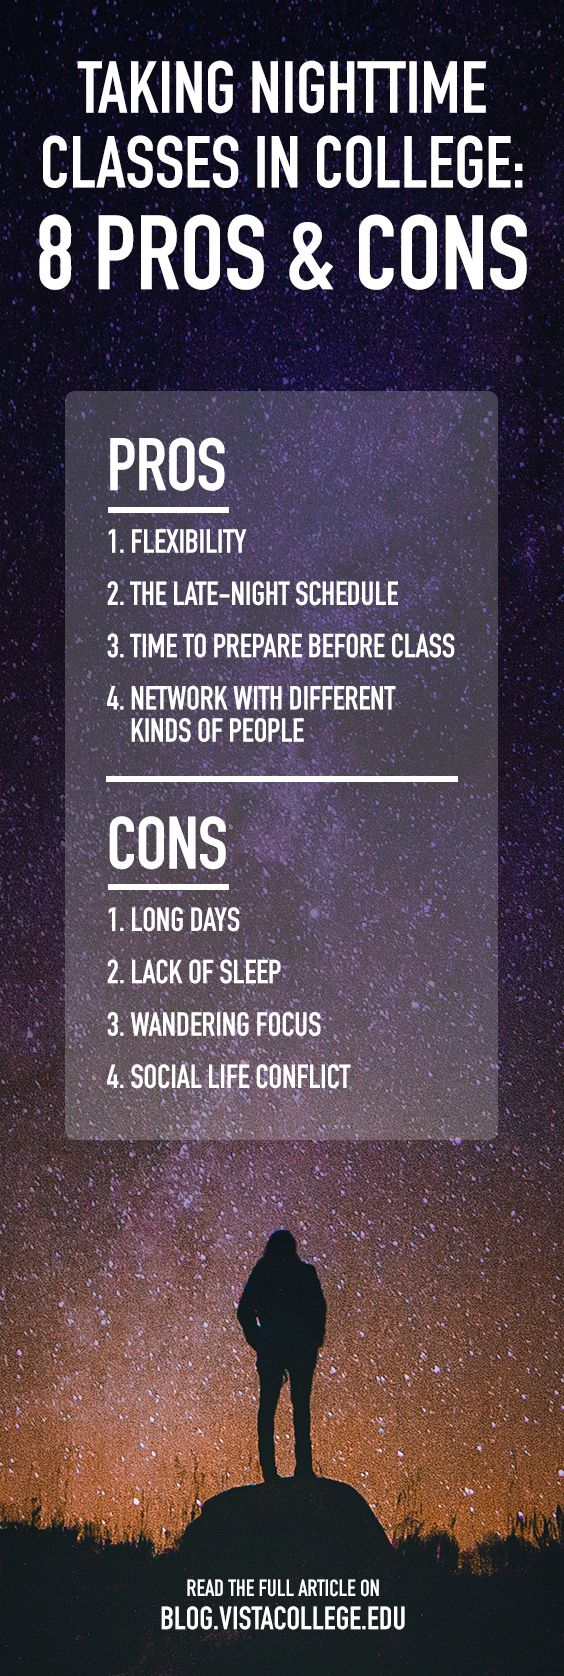 Taking Nighttime Classes in College: 8 Pros and Cons